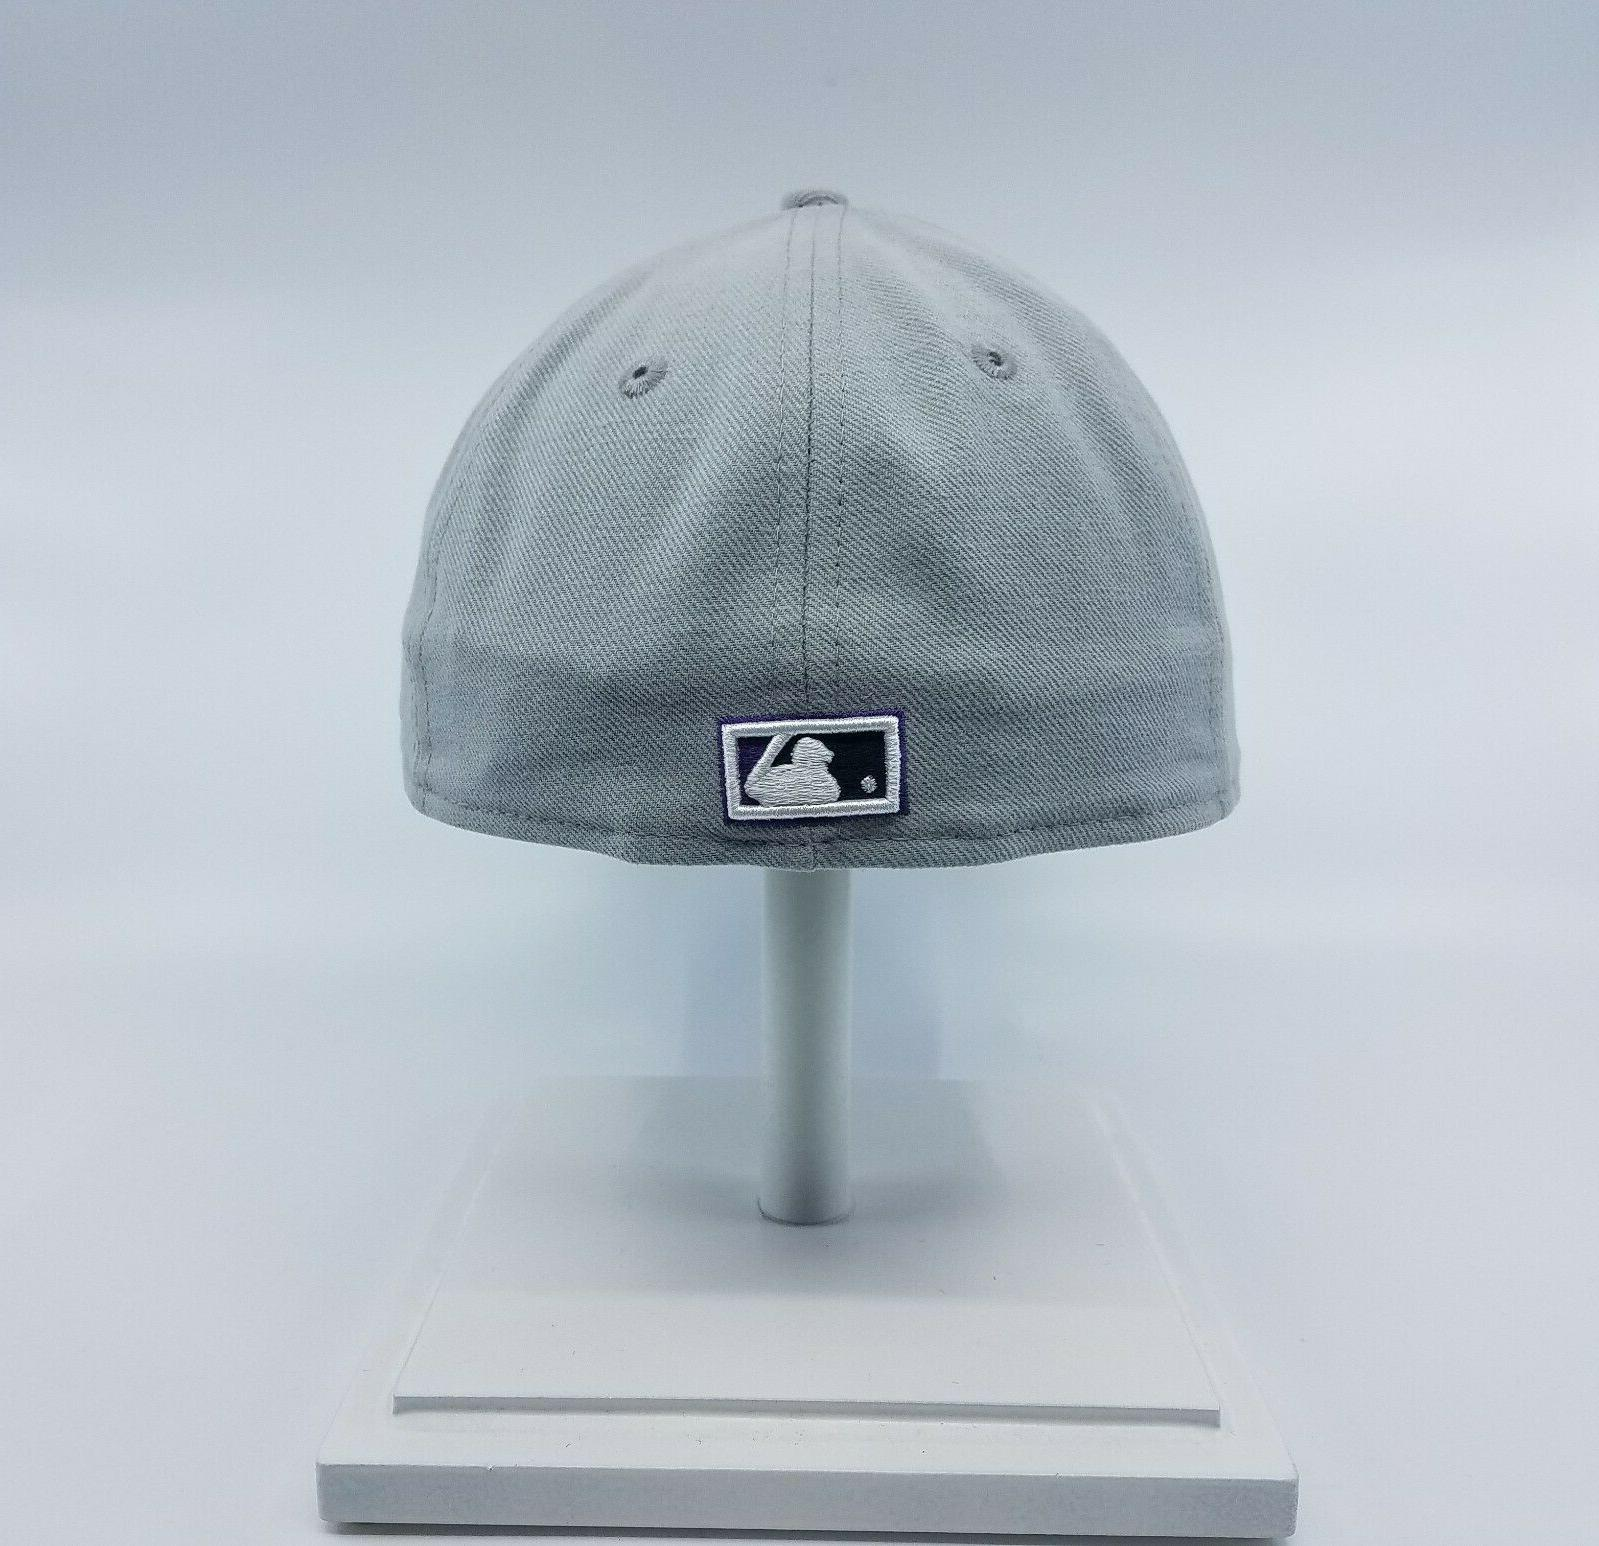 59FIFTY MLB FITTED BASEBALL CAP GREY NEW